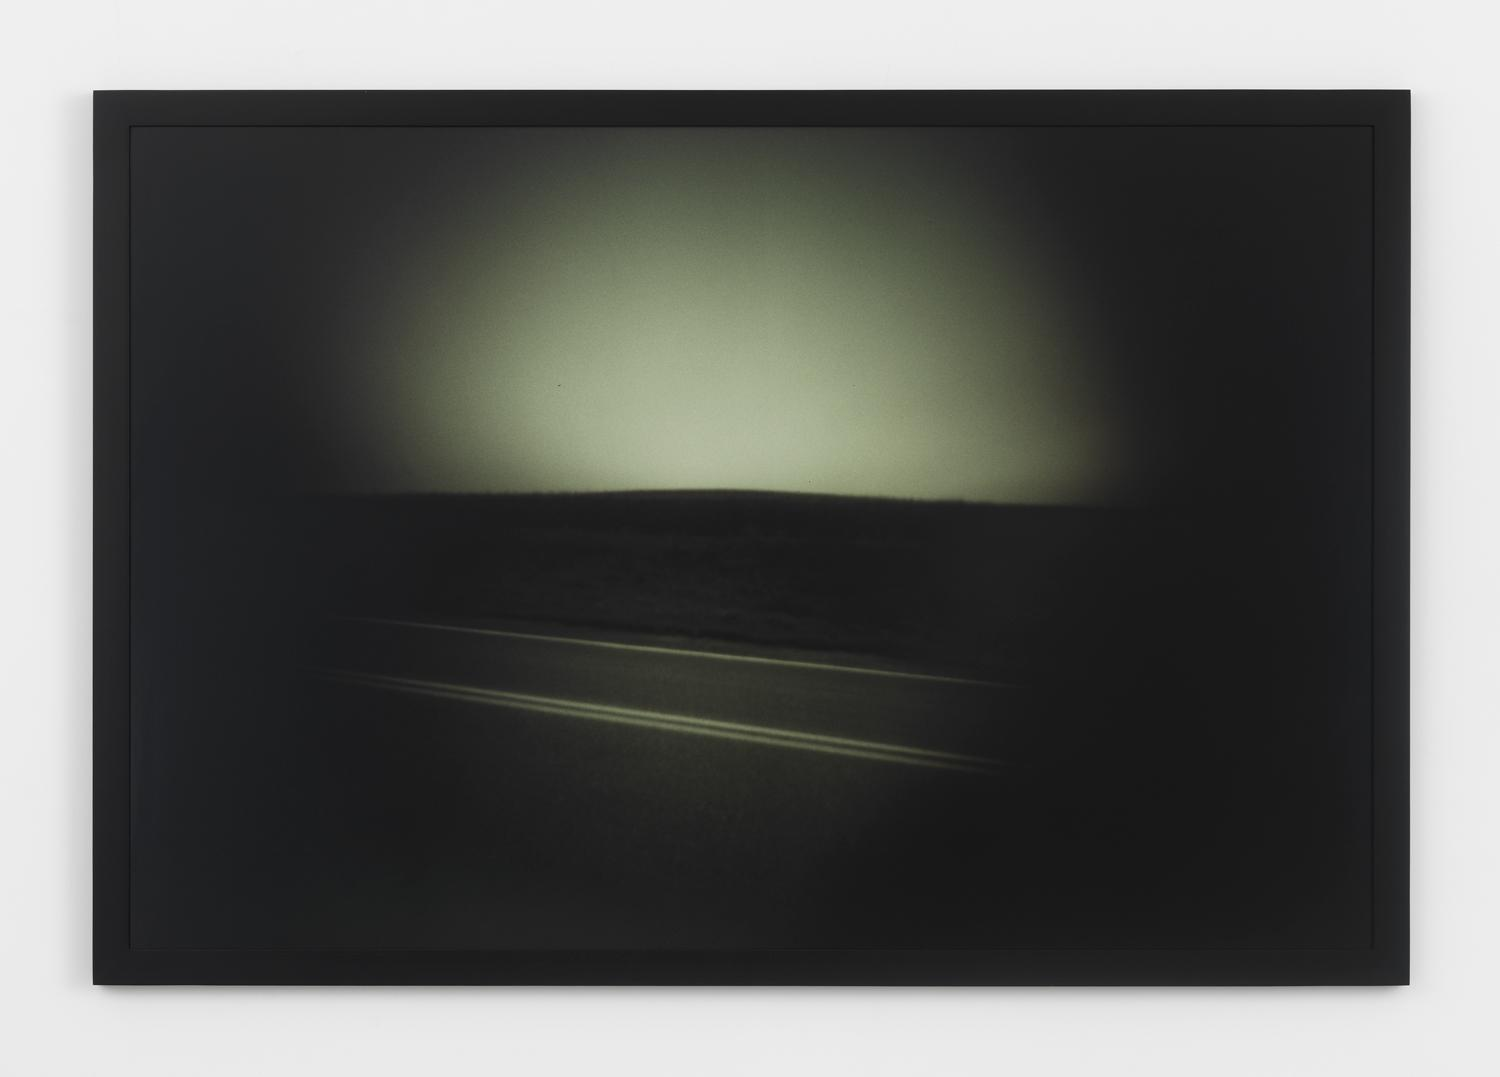 Barbara Ess, Highway, 1995, C-Print, 40h x 60w in.